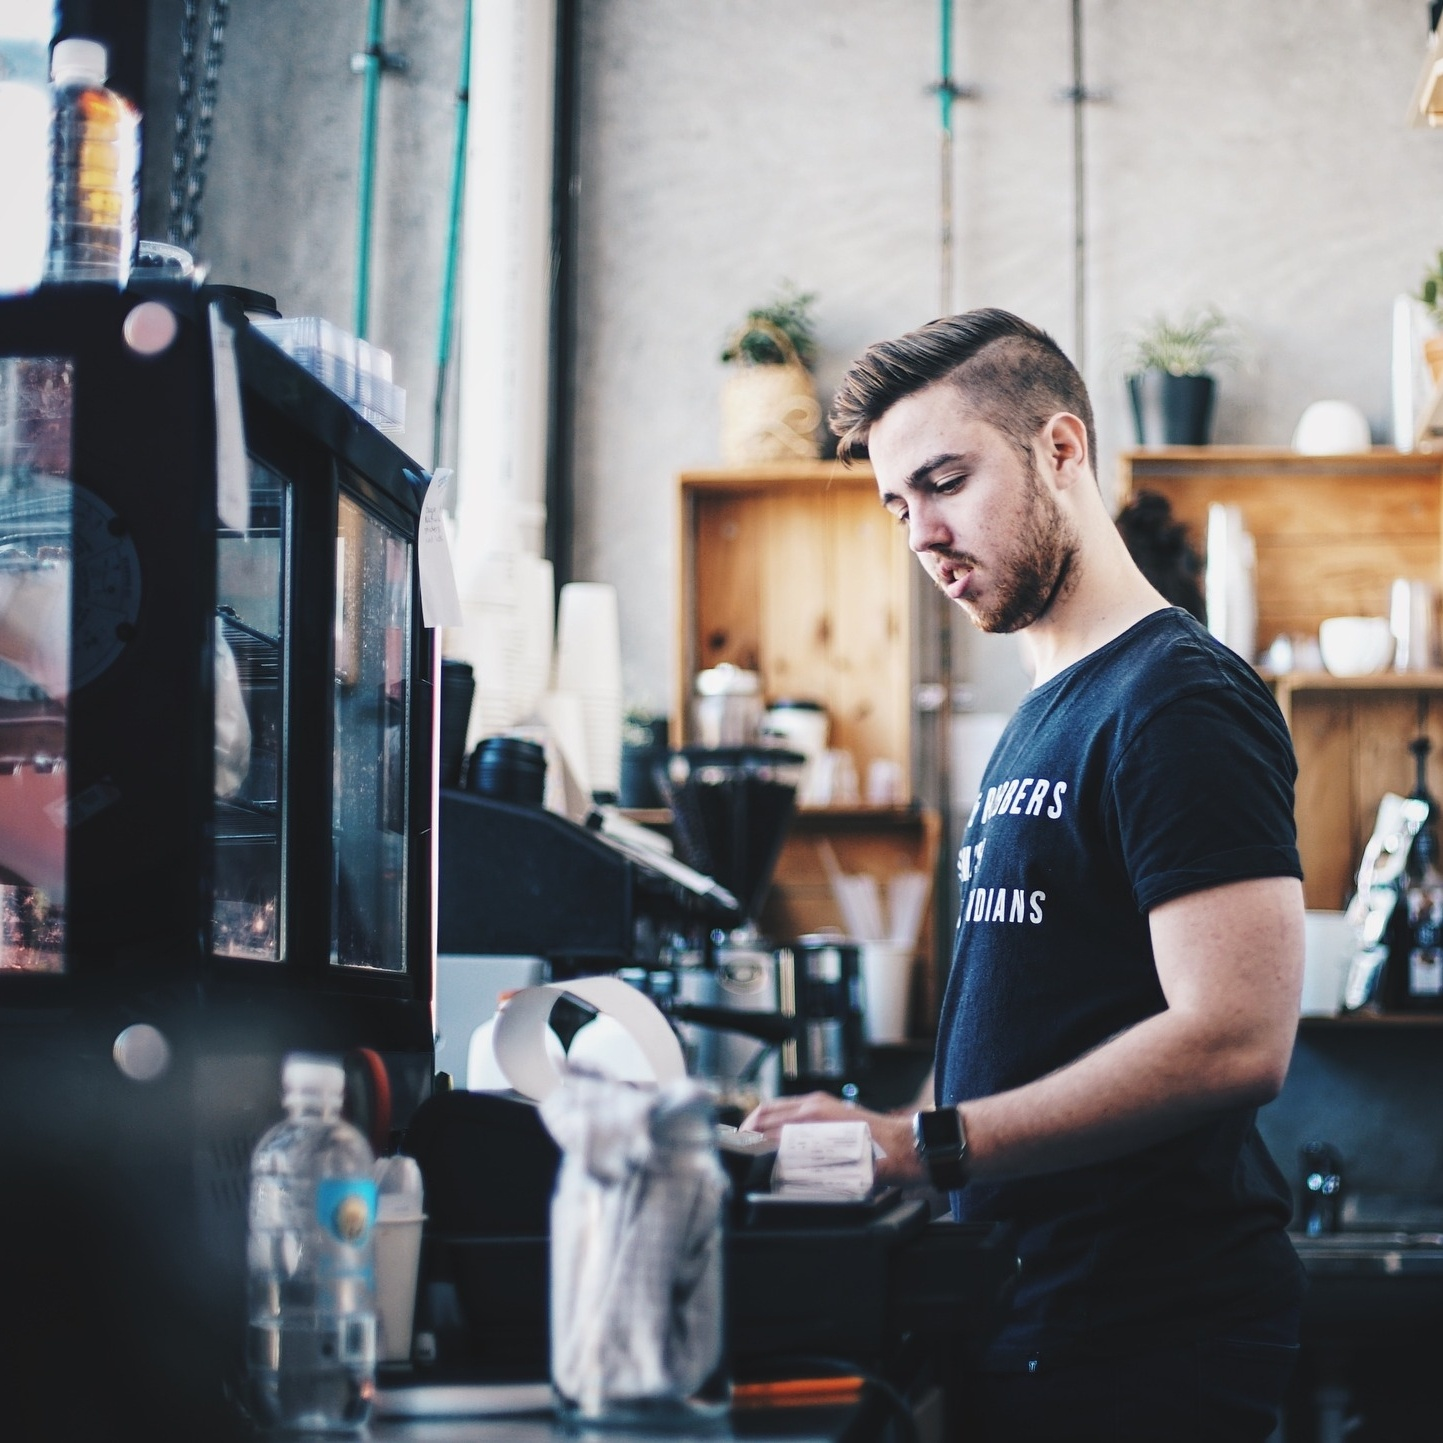 Man working coffee shop.jpg